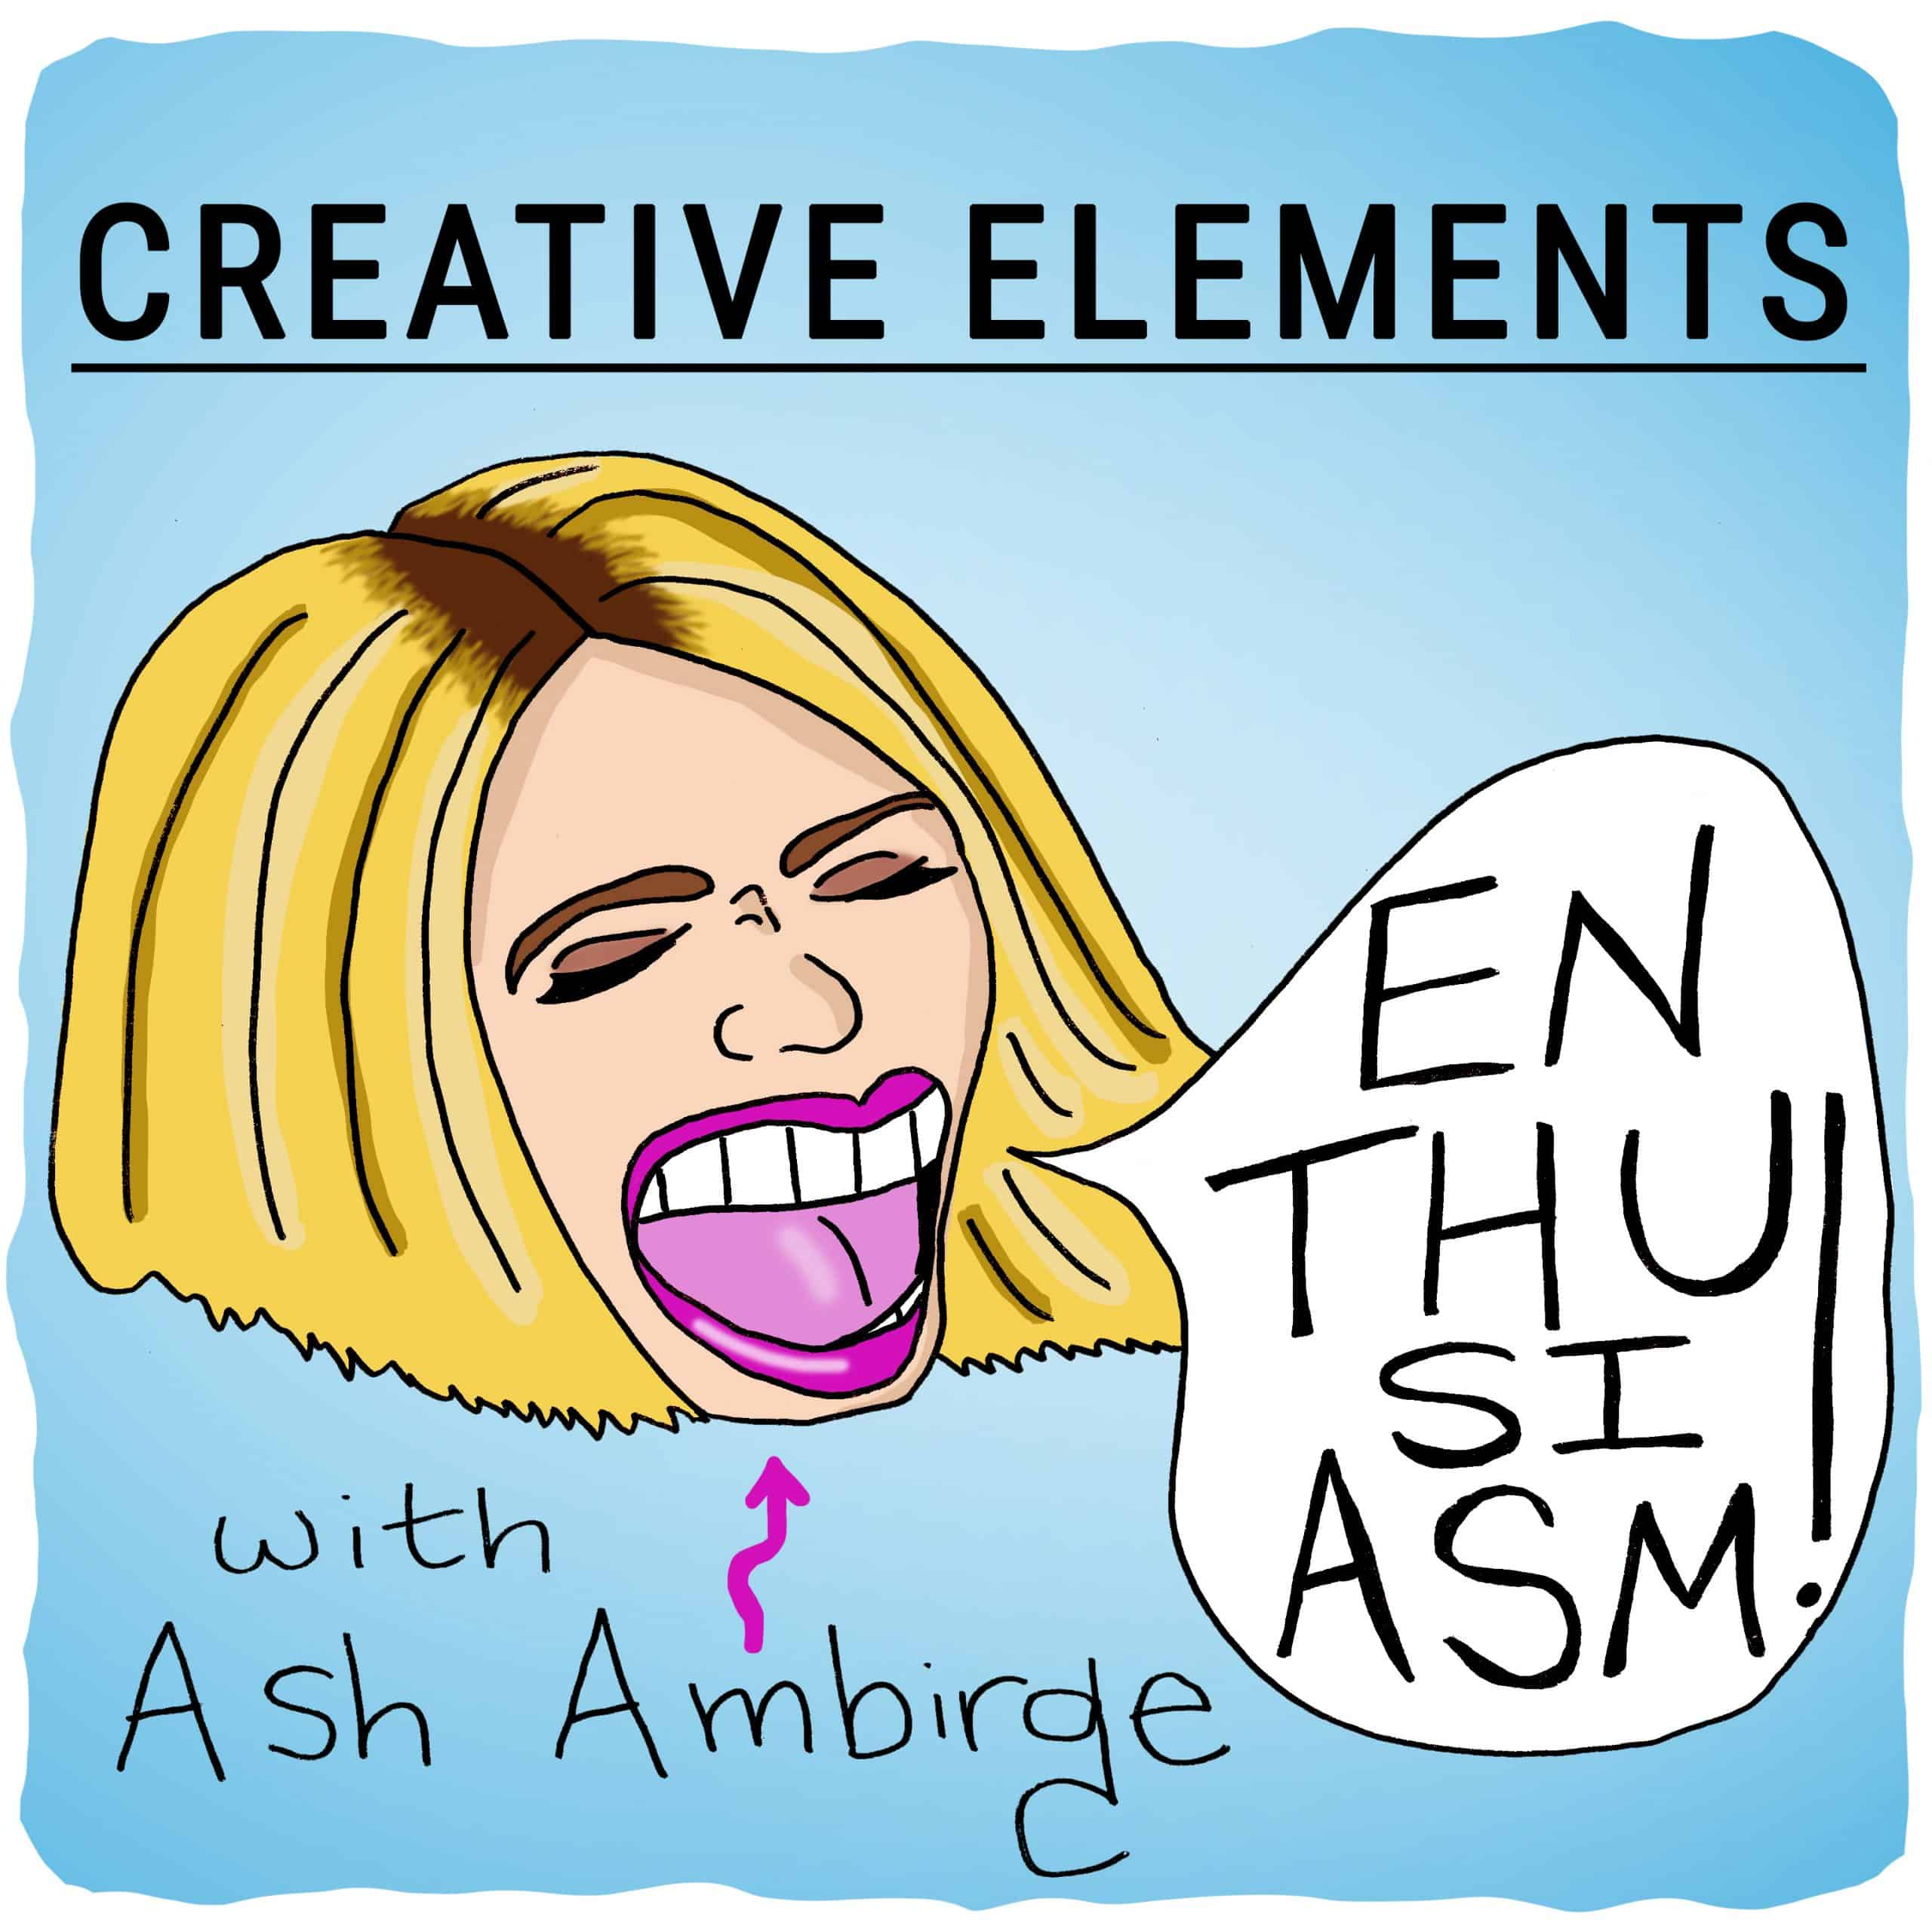 Ash Ambirge on Creative Elements